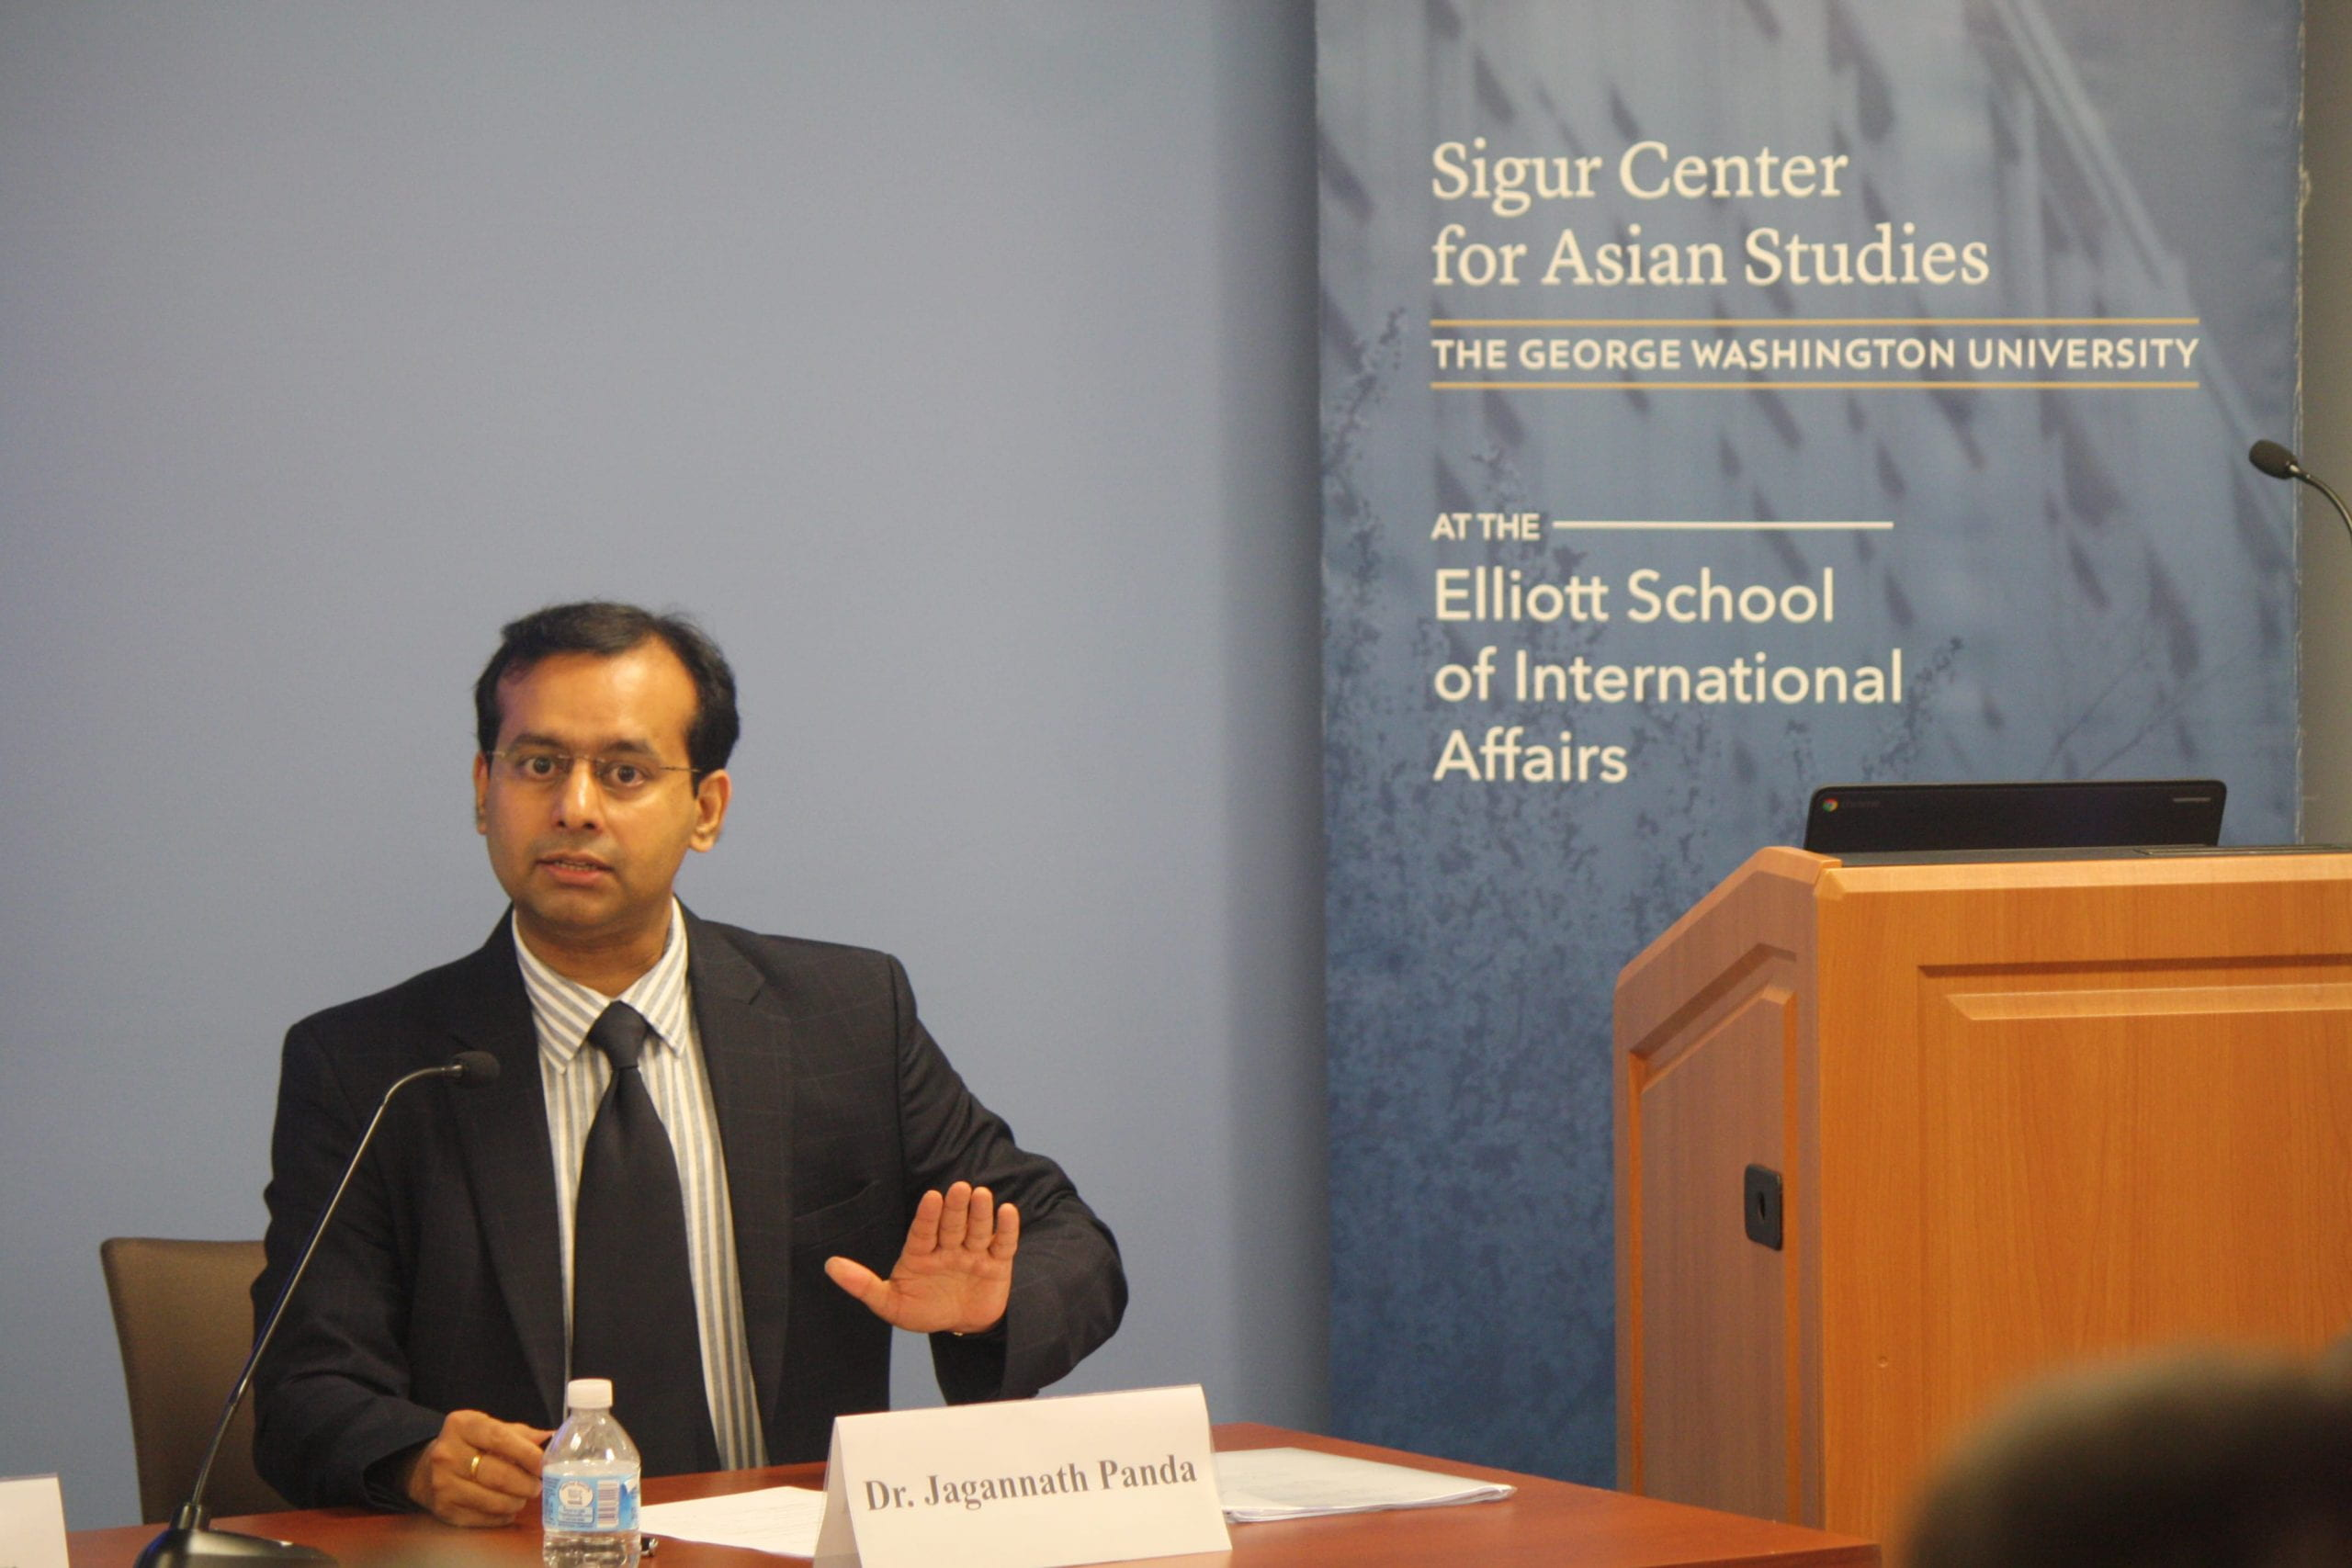 """Dr. Jagannath Panda presenting at """"The Indo-Pacific and Regional Trends: Towards Connectivity or Conflict?"""" public seminar event on September 24, 2018."""